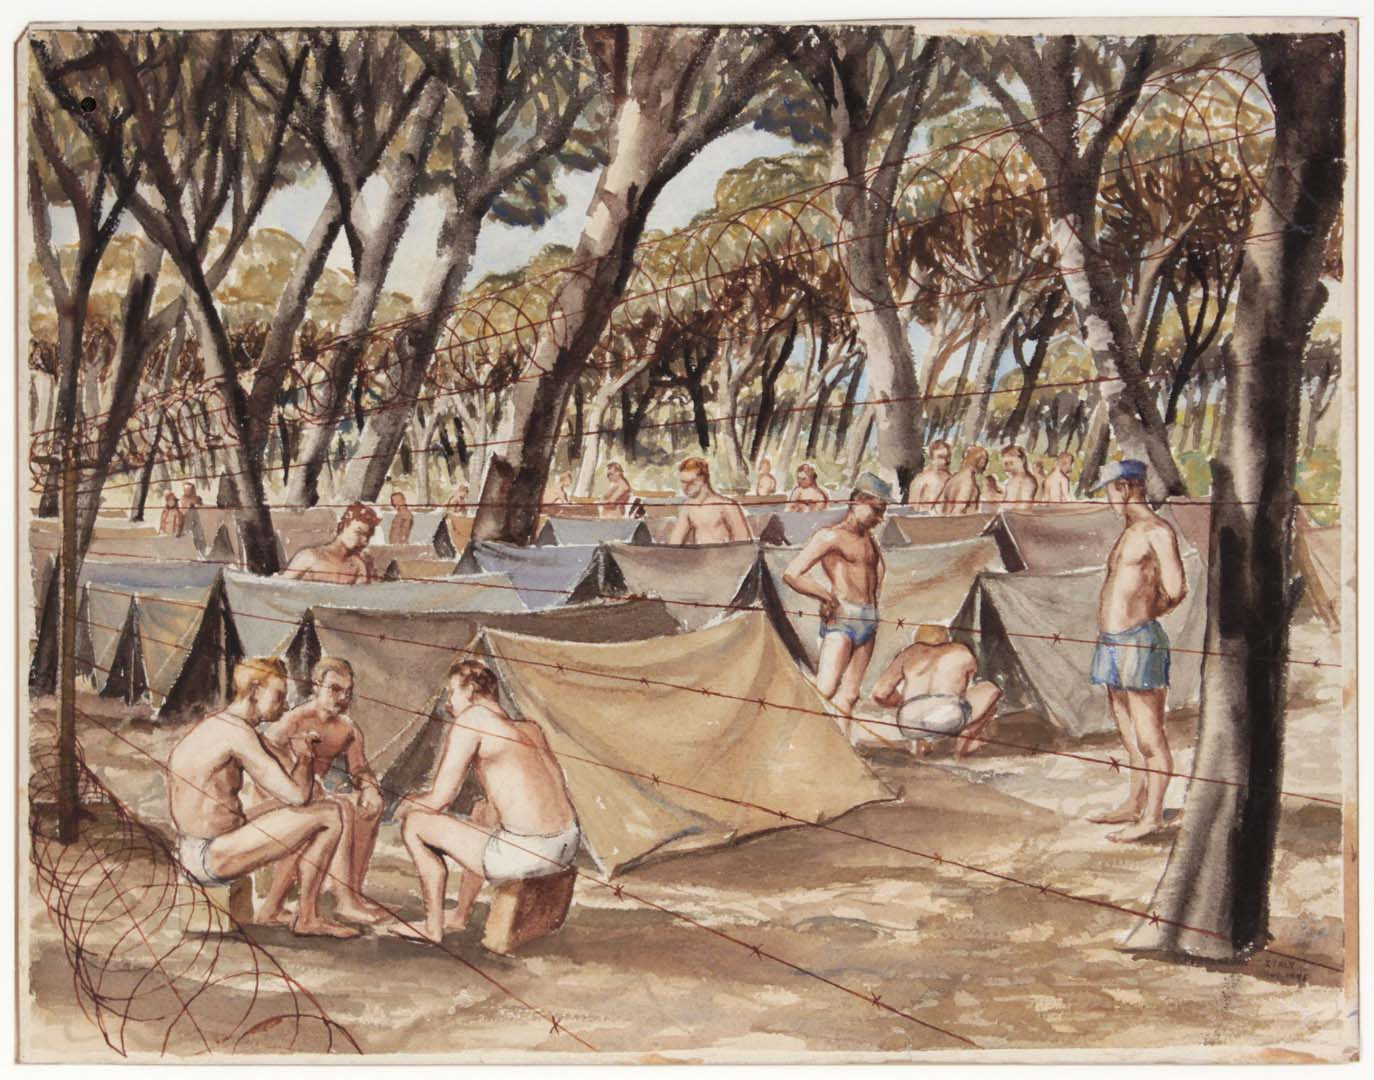 1945 (German Prisoners of War) Watercolor 13.875 x 17.875